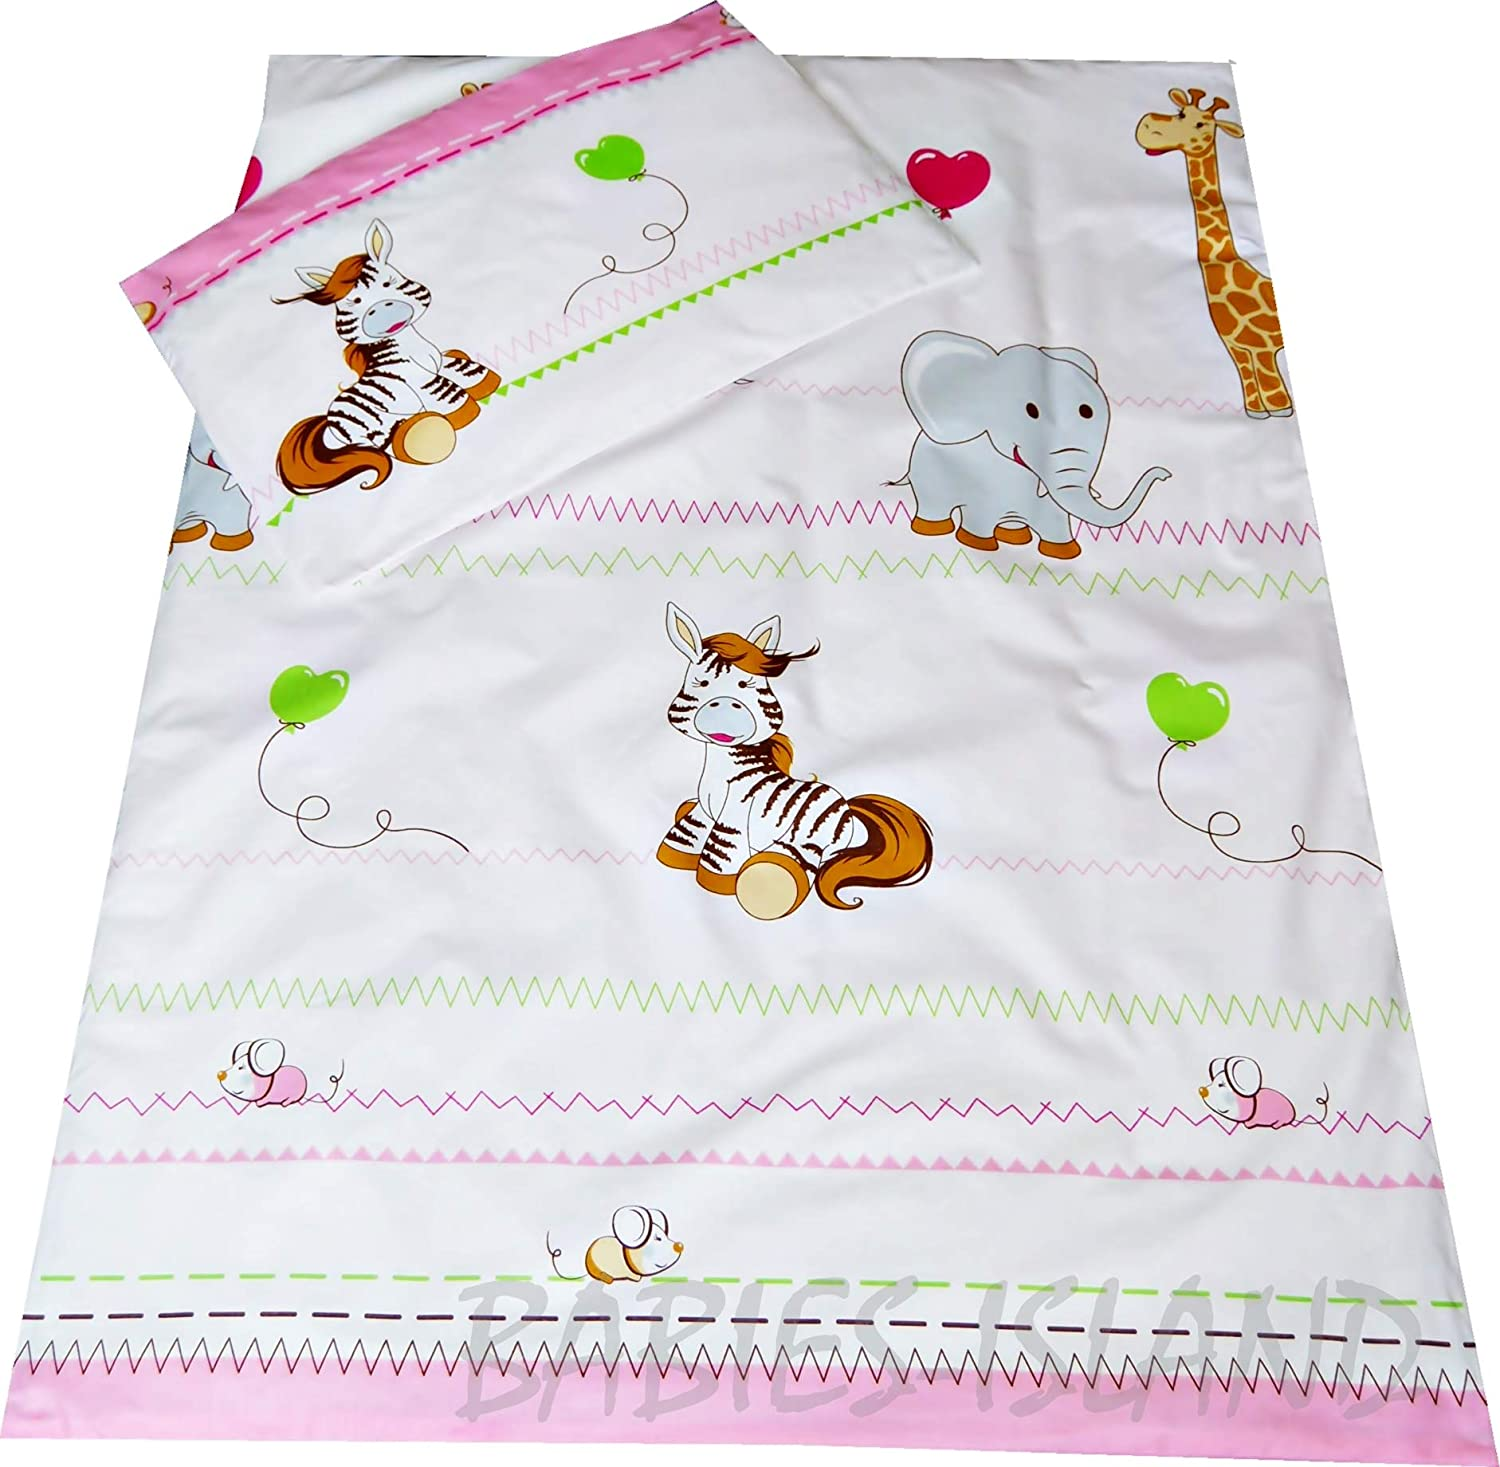 Girls Duvet Cover and Pillowcase to fit Cot babies-island Childrens Bedding set 90x120 cm PINK JUNGLE ANIMALS